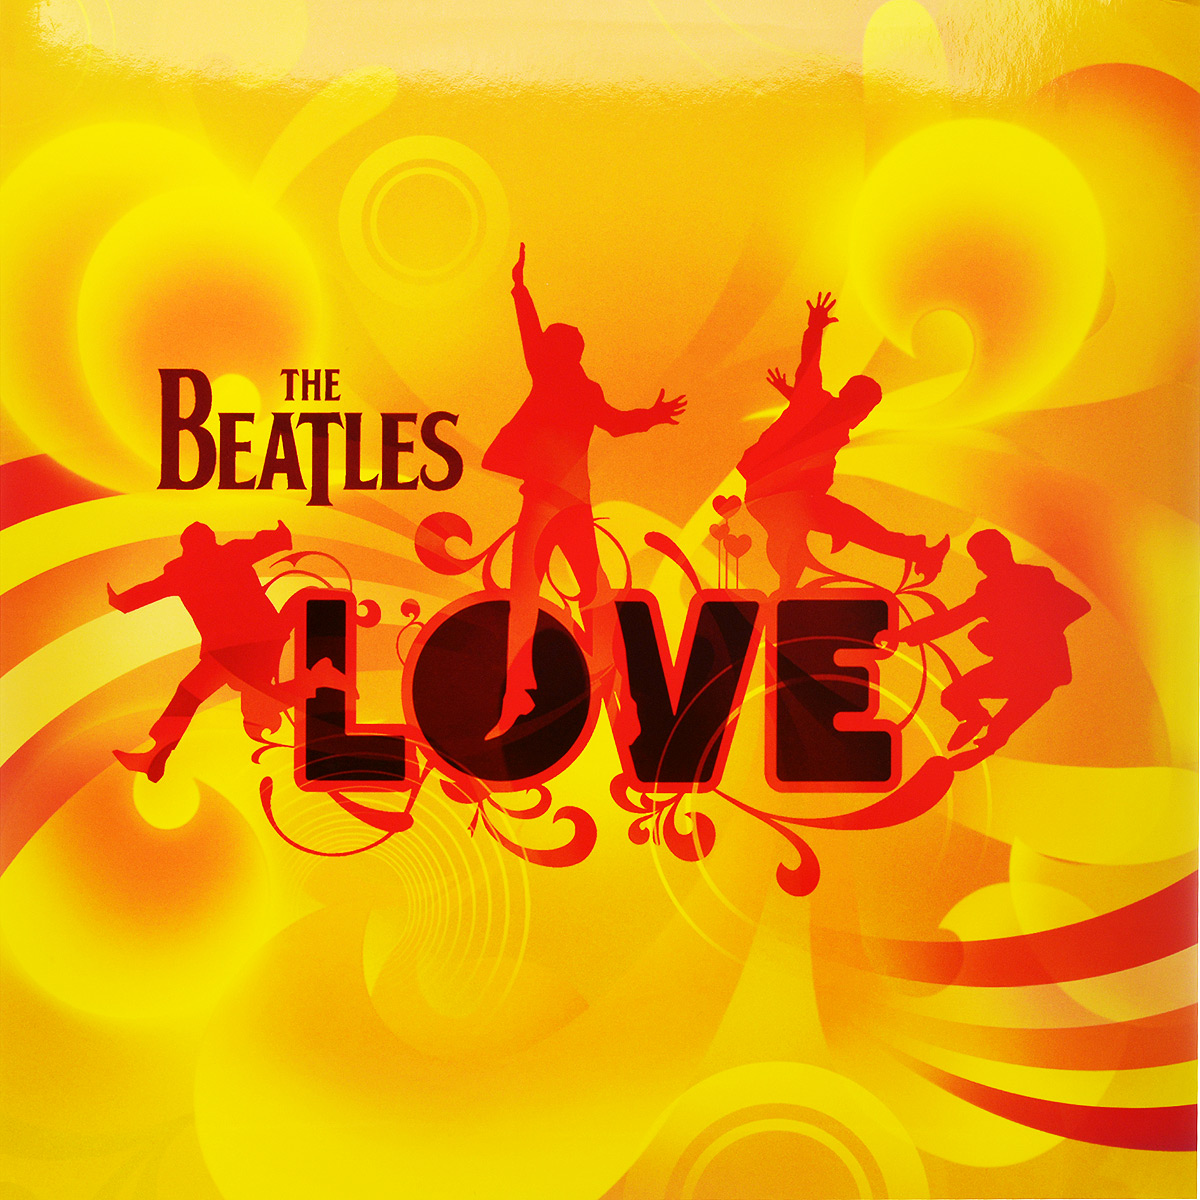 The Beatles The Beatles. Love (2 LP) заколка для собак йорк той чихуа шпиц мальтезе и др колпачок